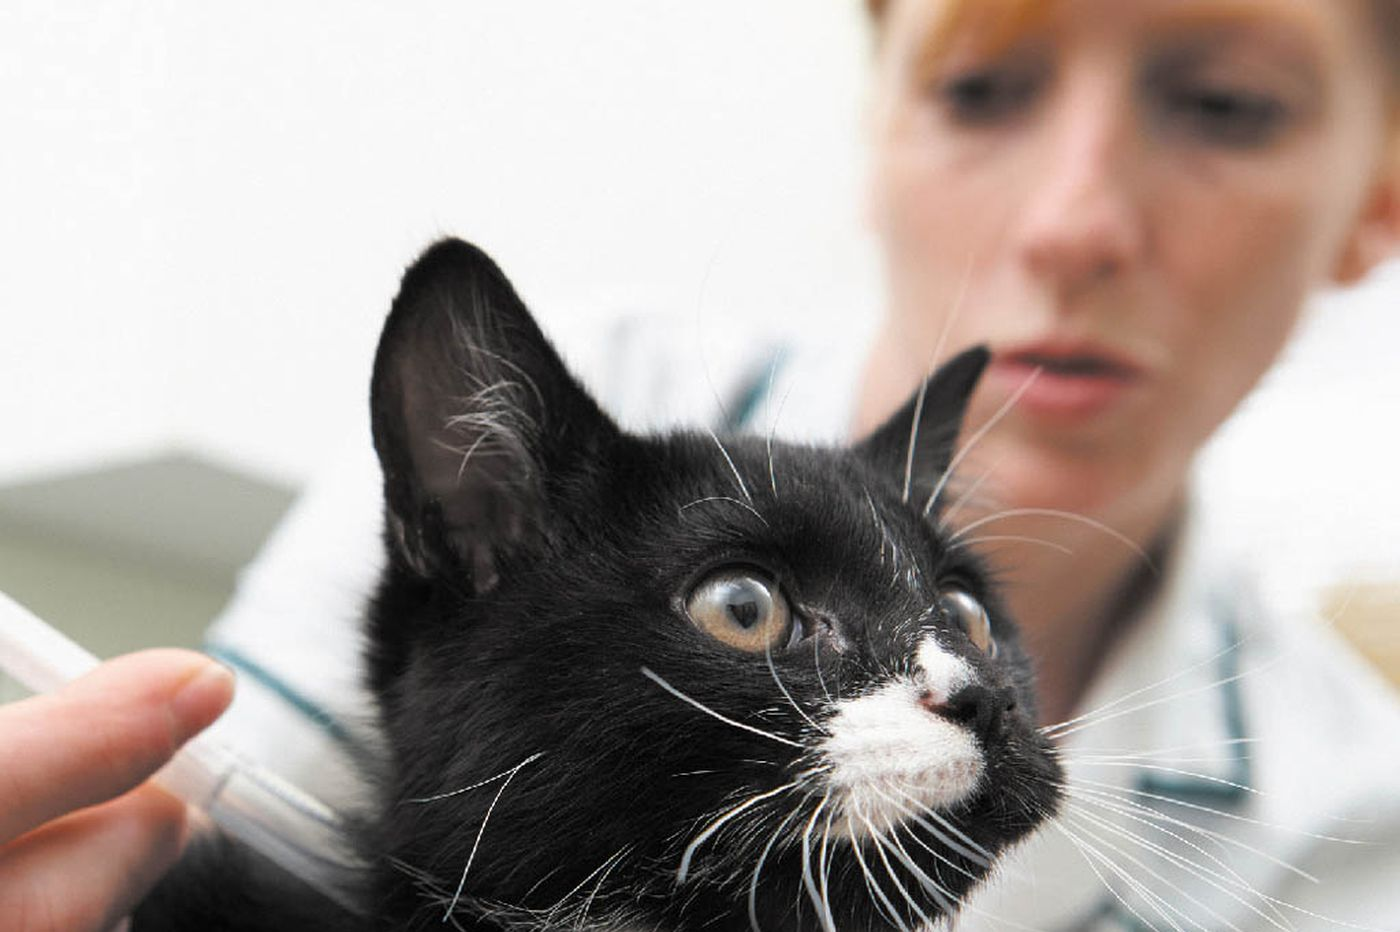 Feline diabetes: How to recognize and manage this common disease in cats